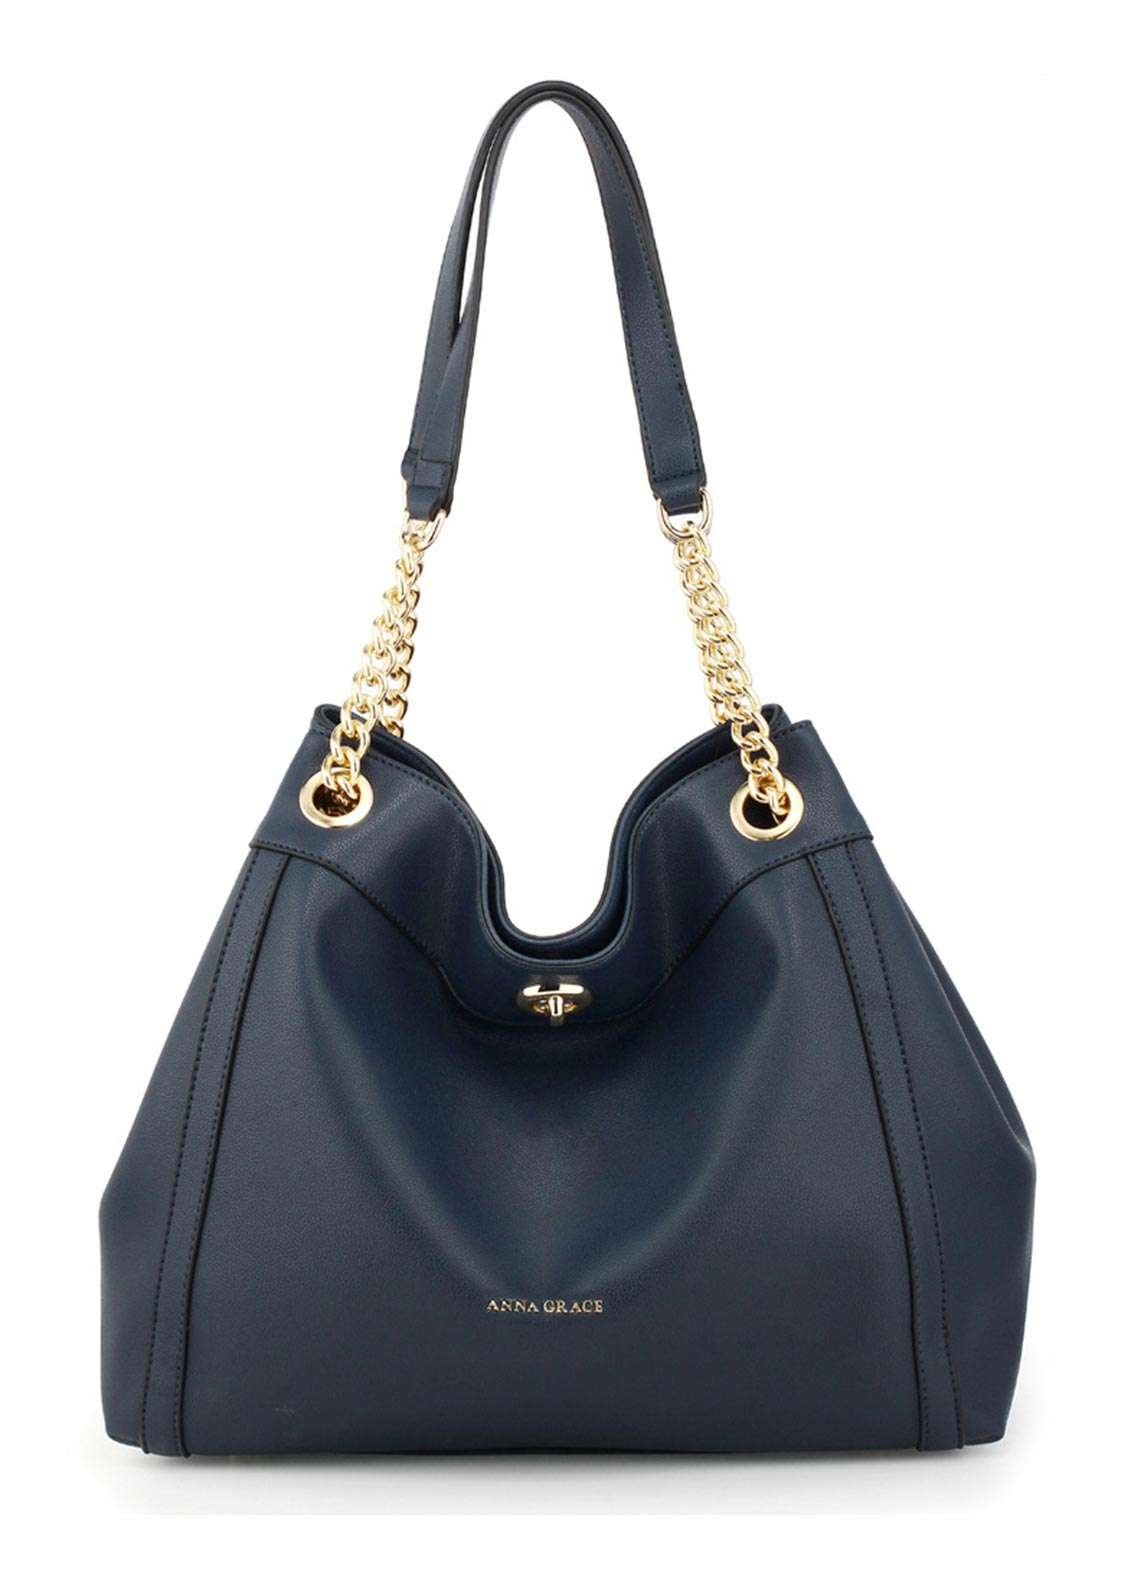 Anna Grace London Faux Leather Hobo Bags for Women Navy with Smooth Texture